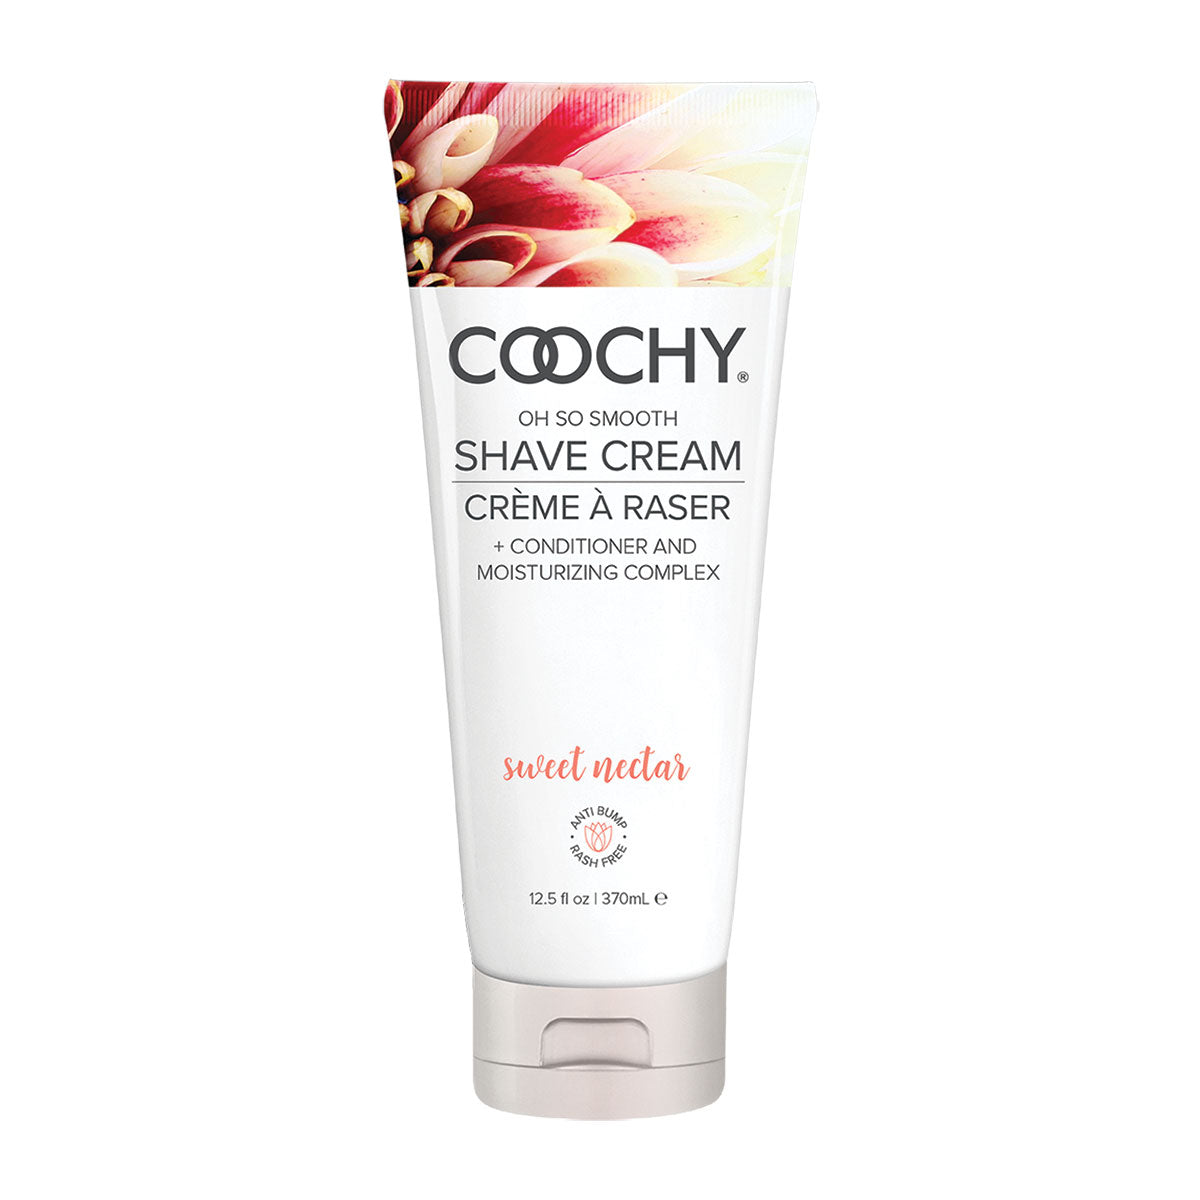 Coochy Oh So Smooth Shave Cream - Sweet Nectar 12.5